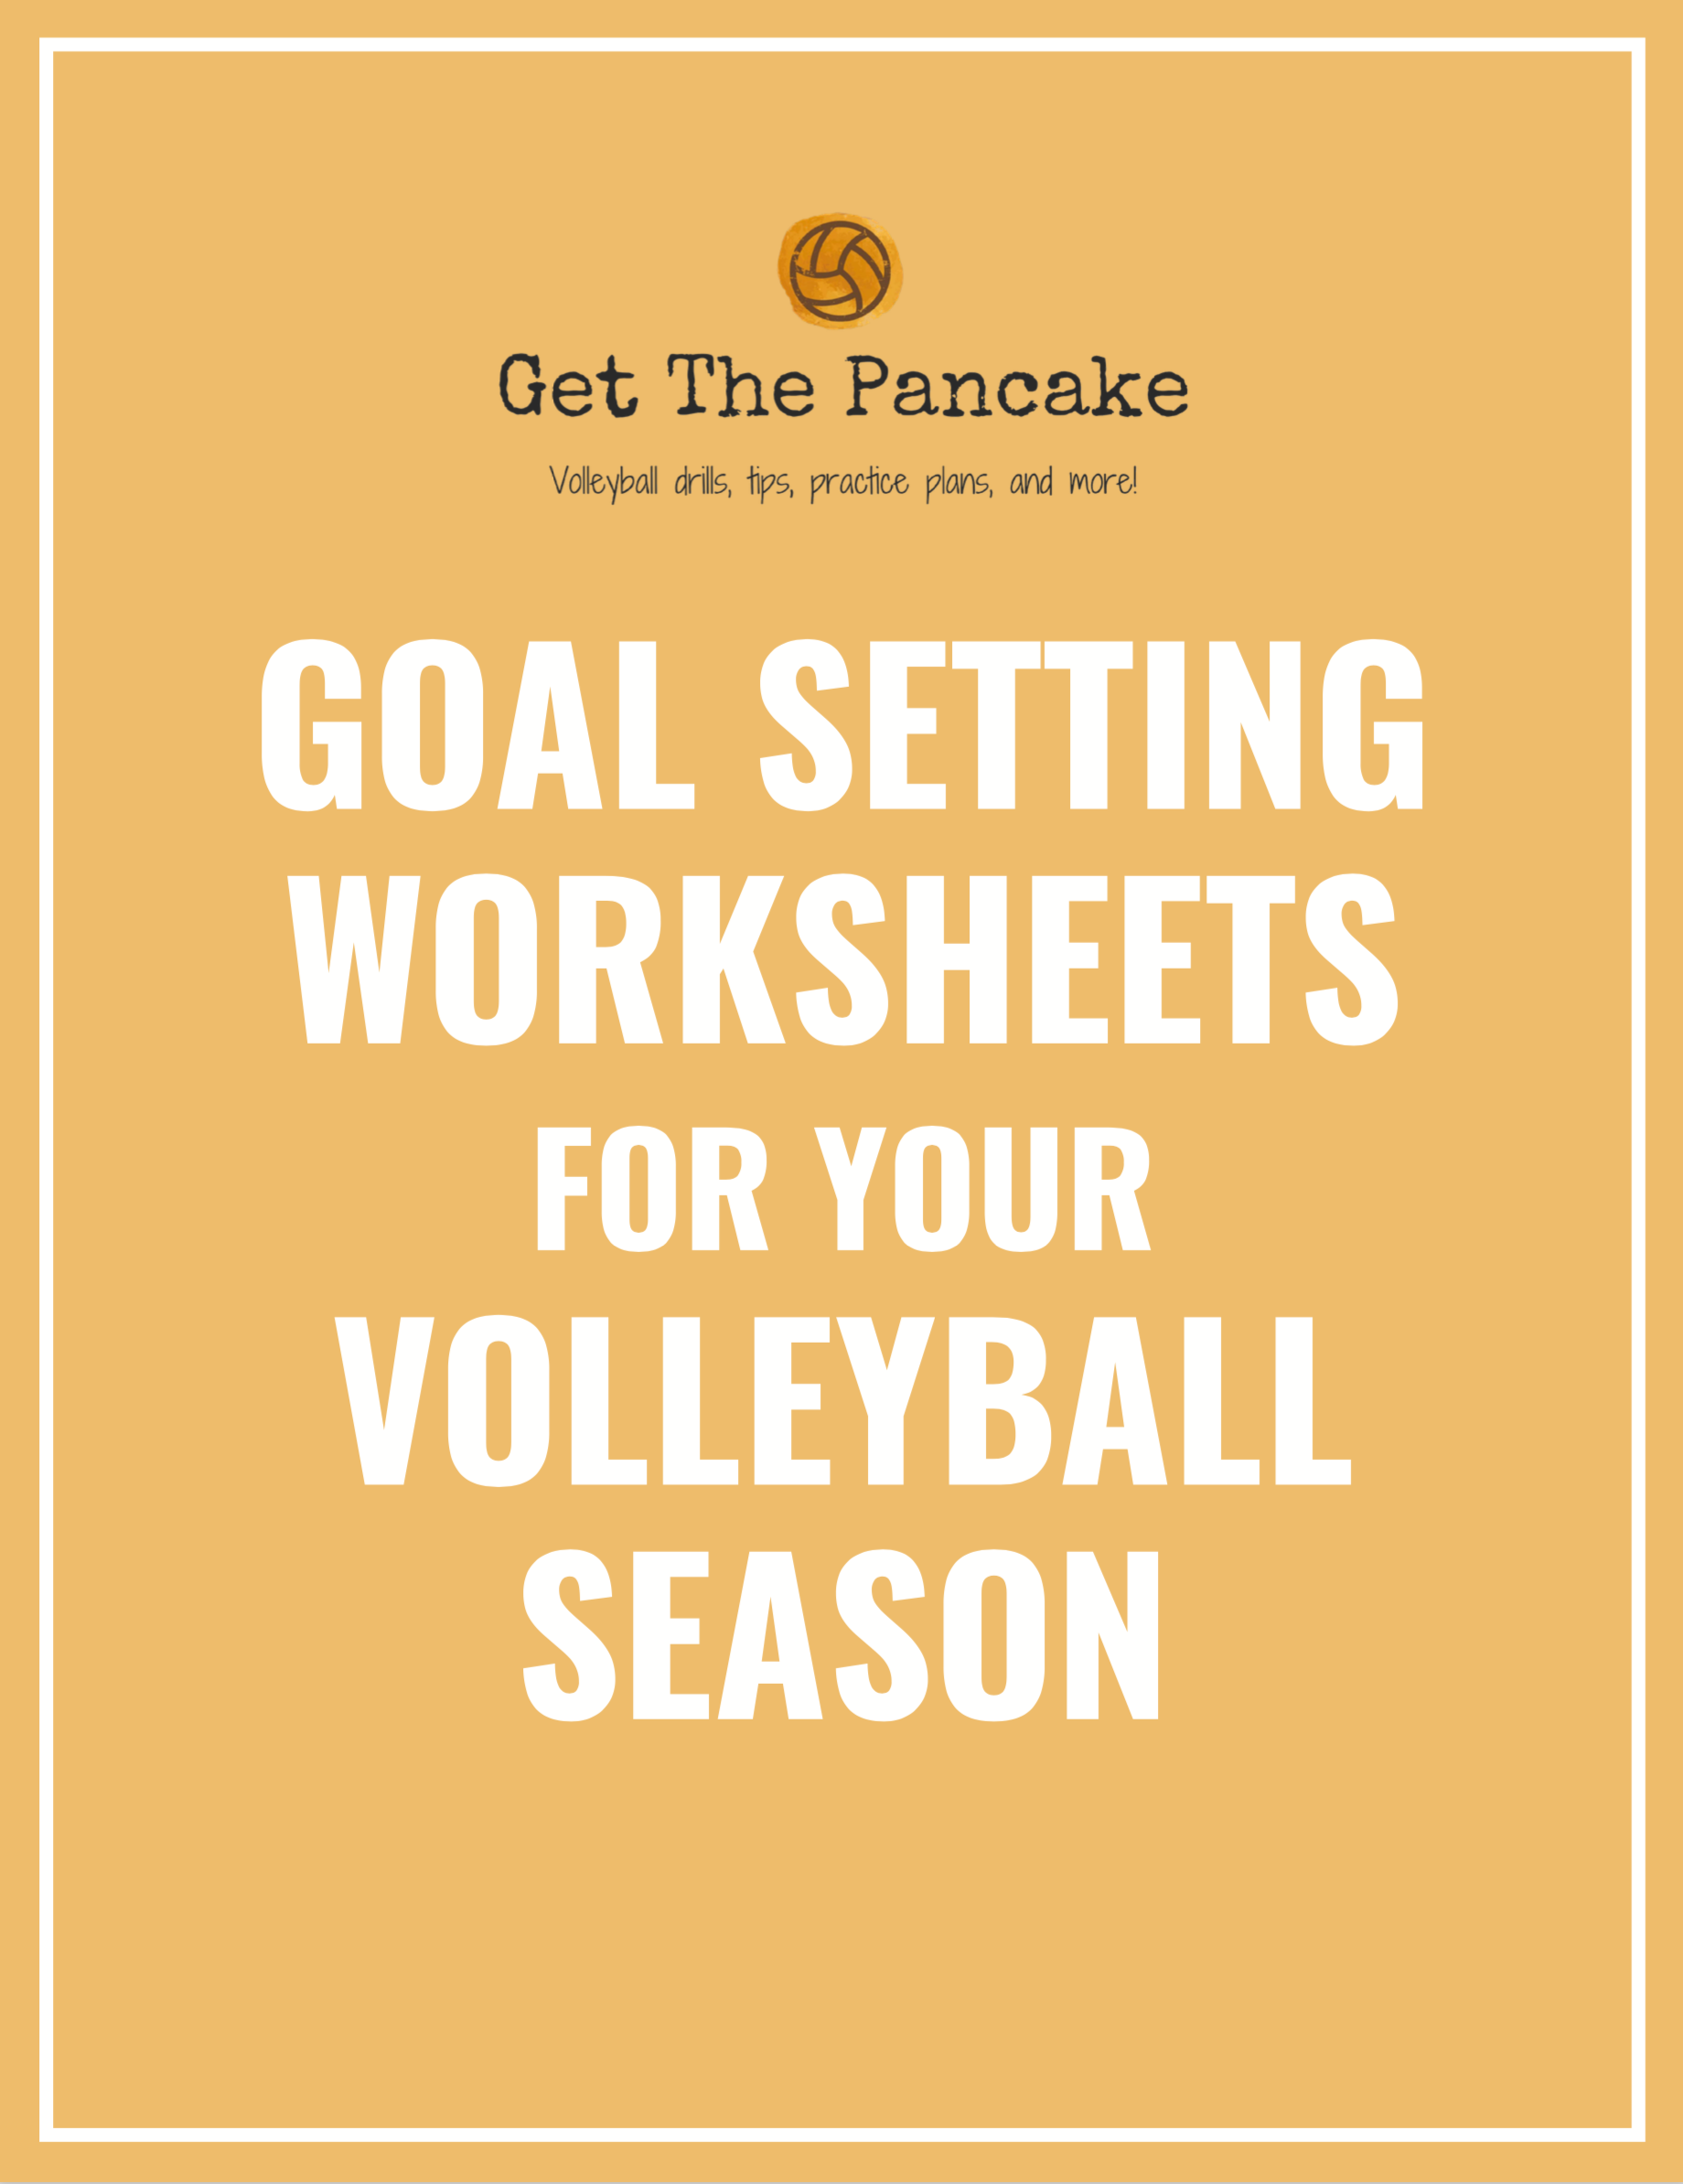 BE THE COACH THAT PLAYERS REMEMBER. - Make a positive impact on your athletes by teaching them goal setting with these easy, printable worksheets.